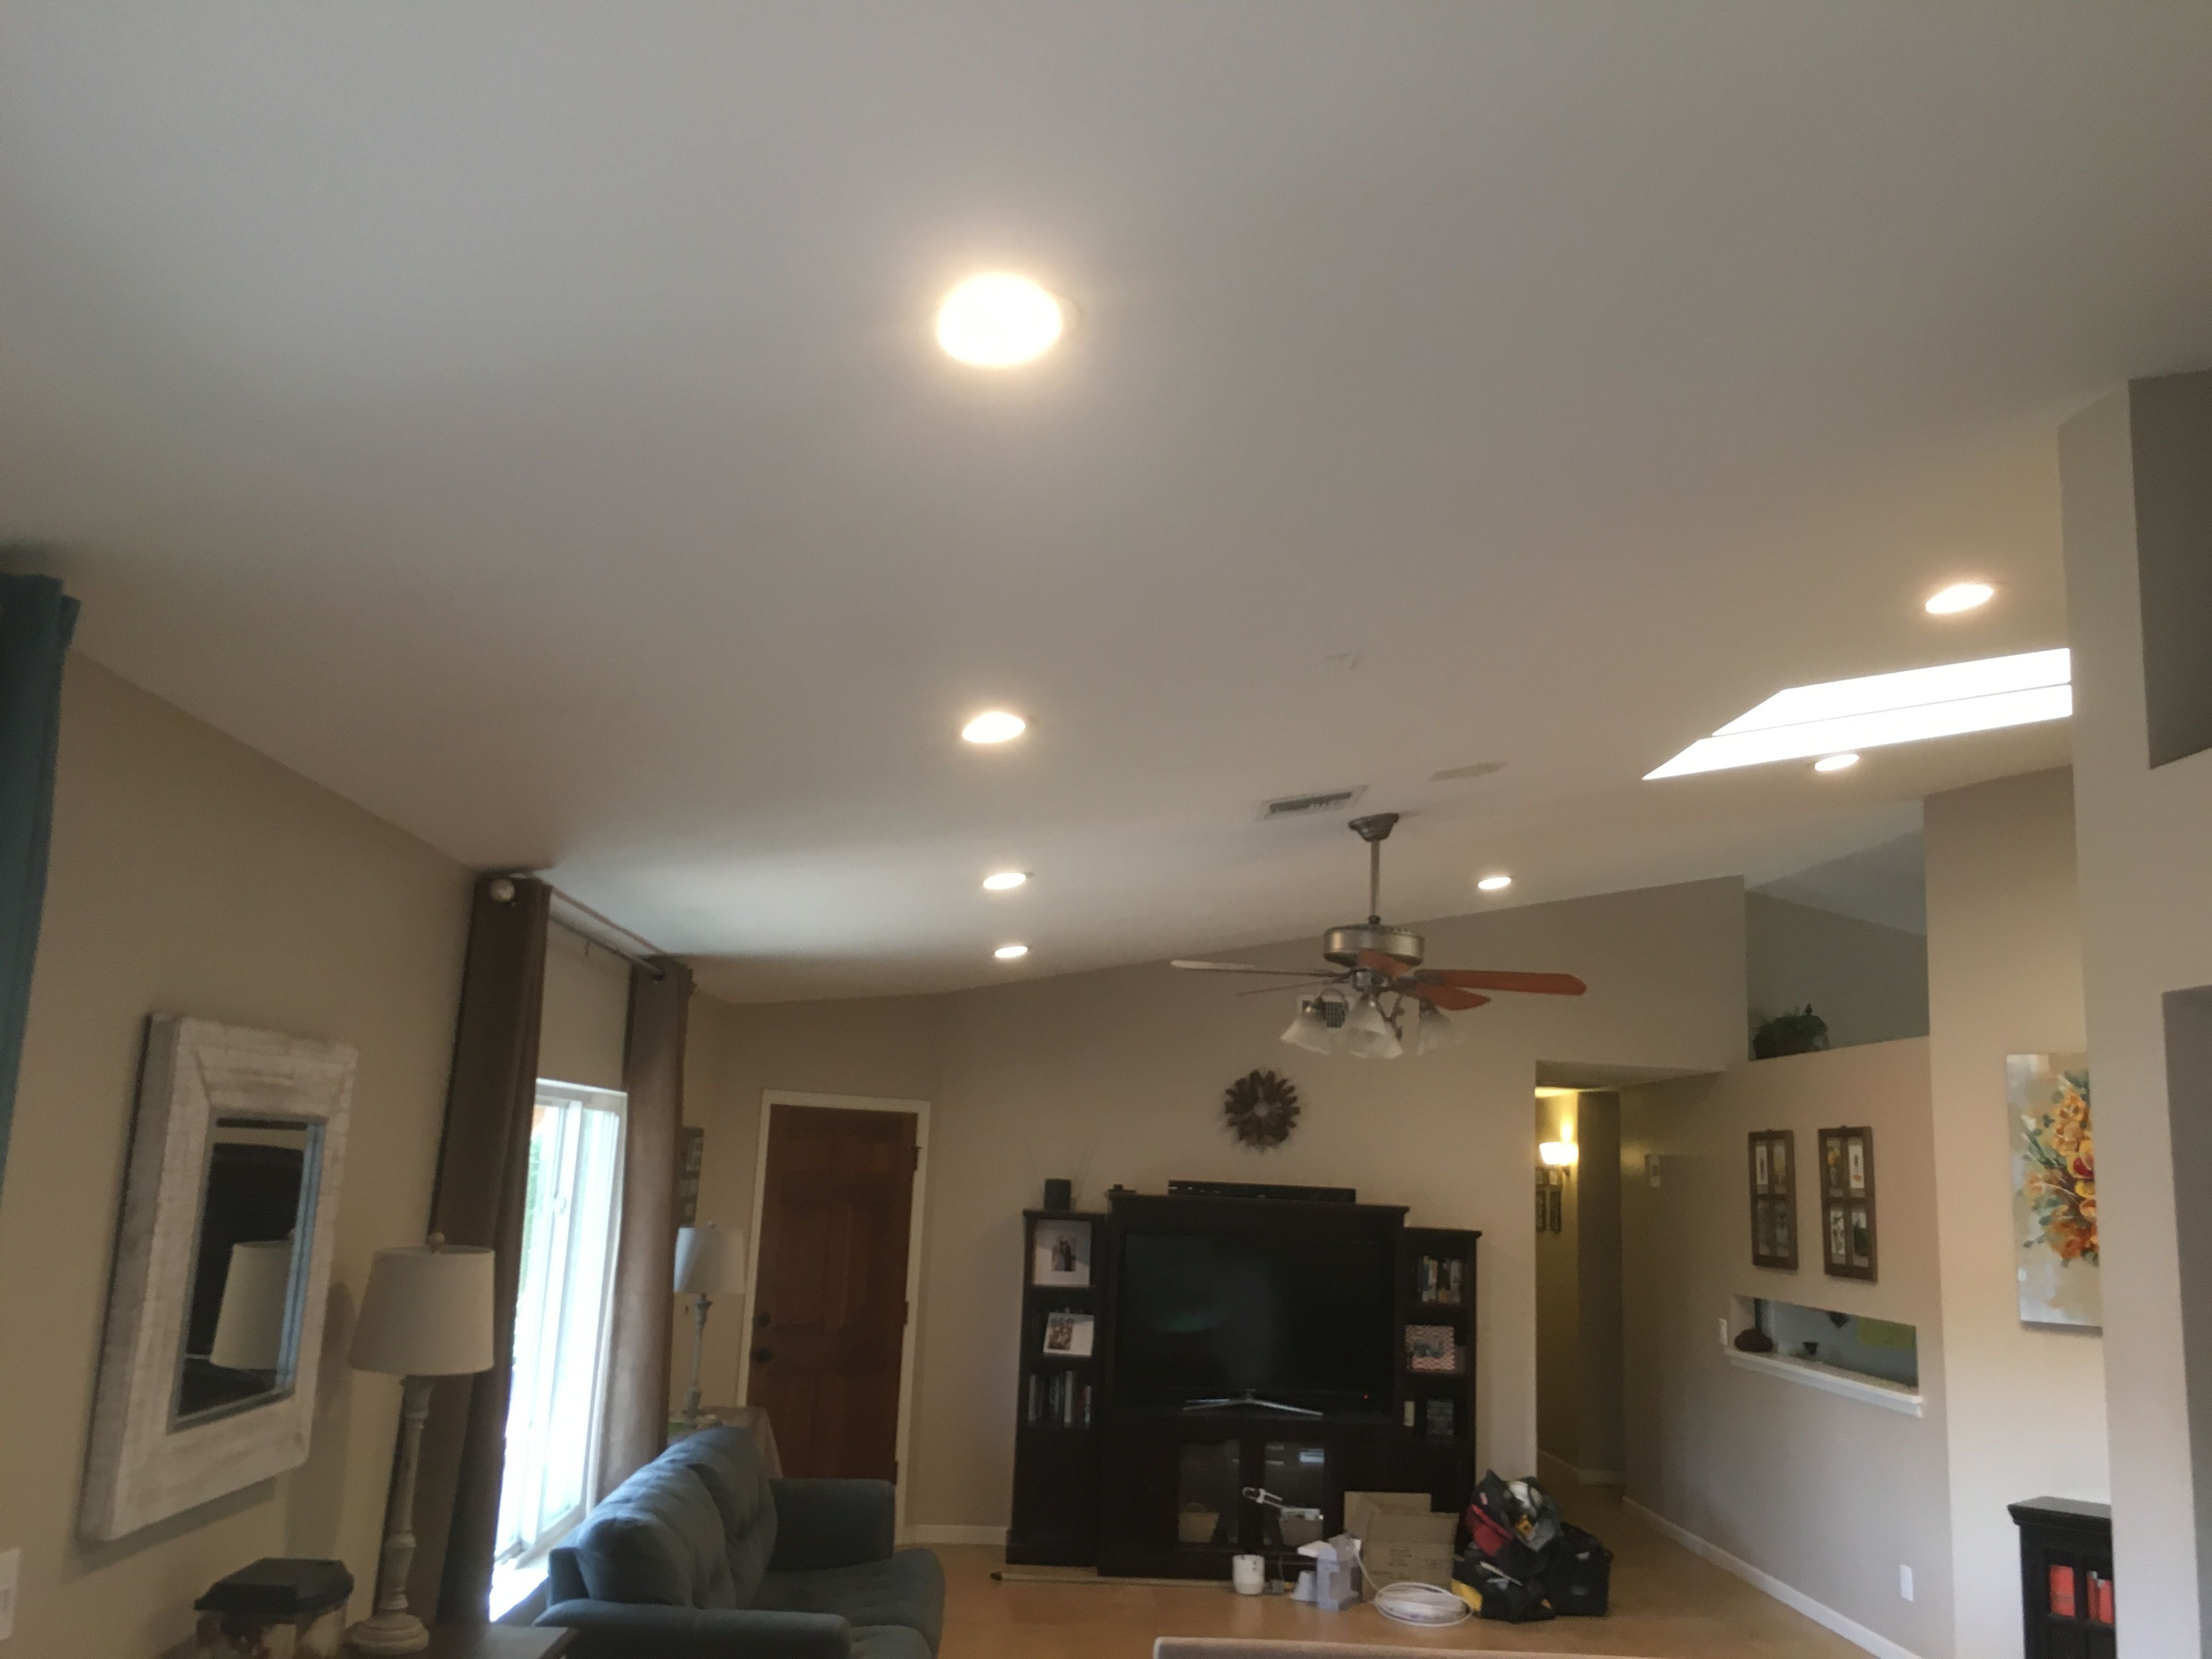 Installed 10 6 inch recessed lighting and a dimmer recessedlighting